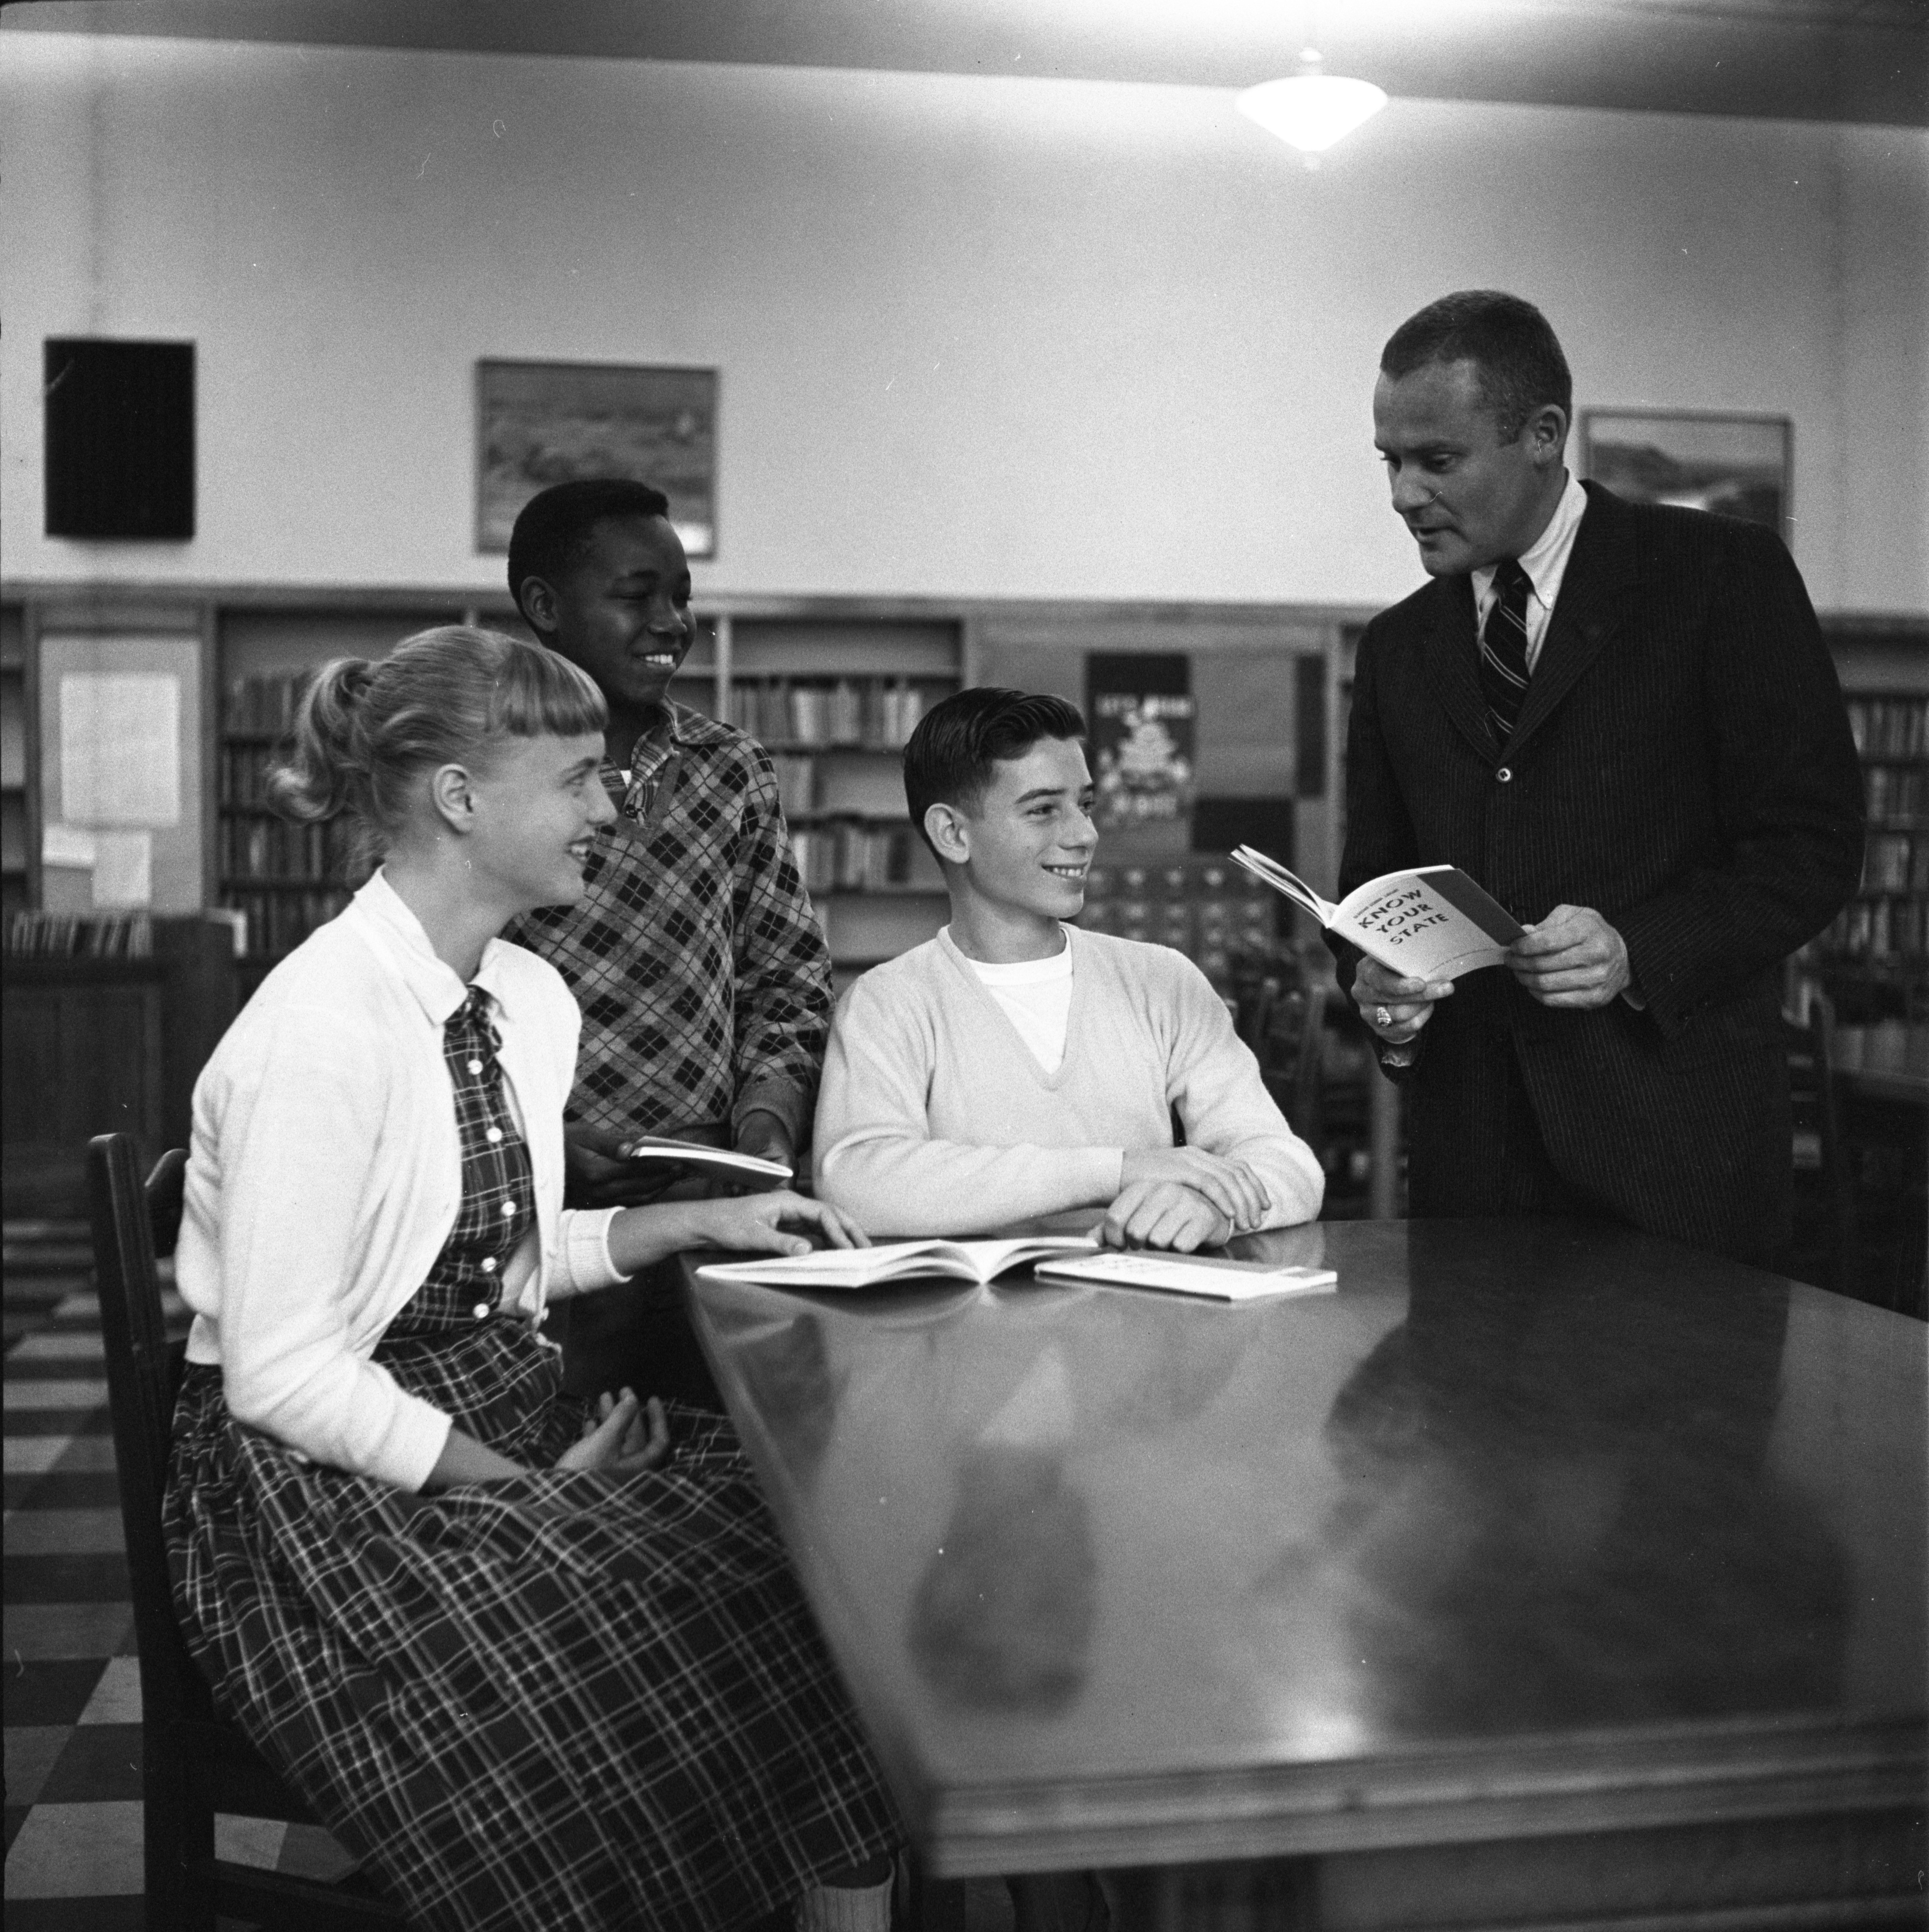 Arthur Markendorf Shows Slauson Students The Latest League of Women Voters Pamphlet, November 1957 image